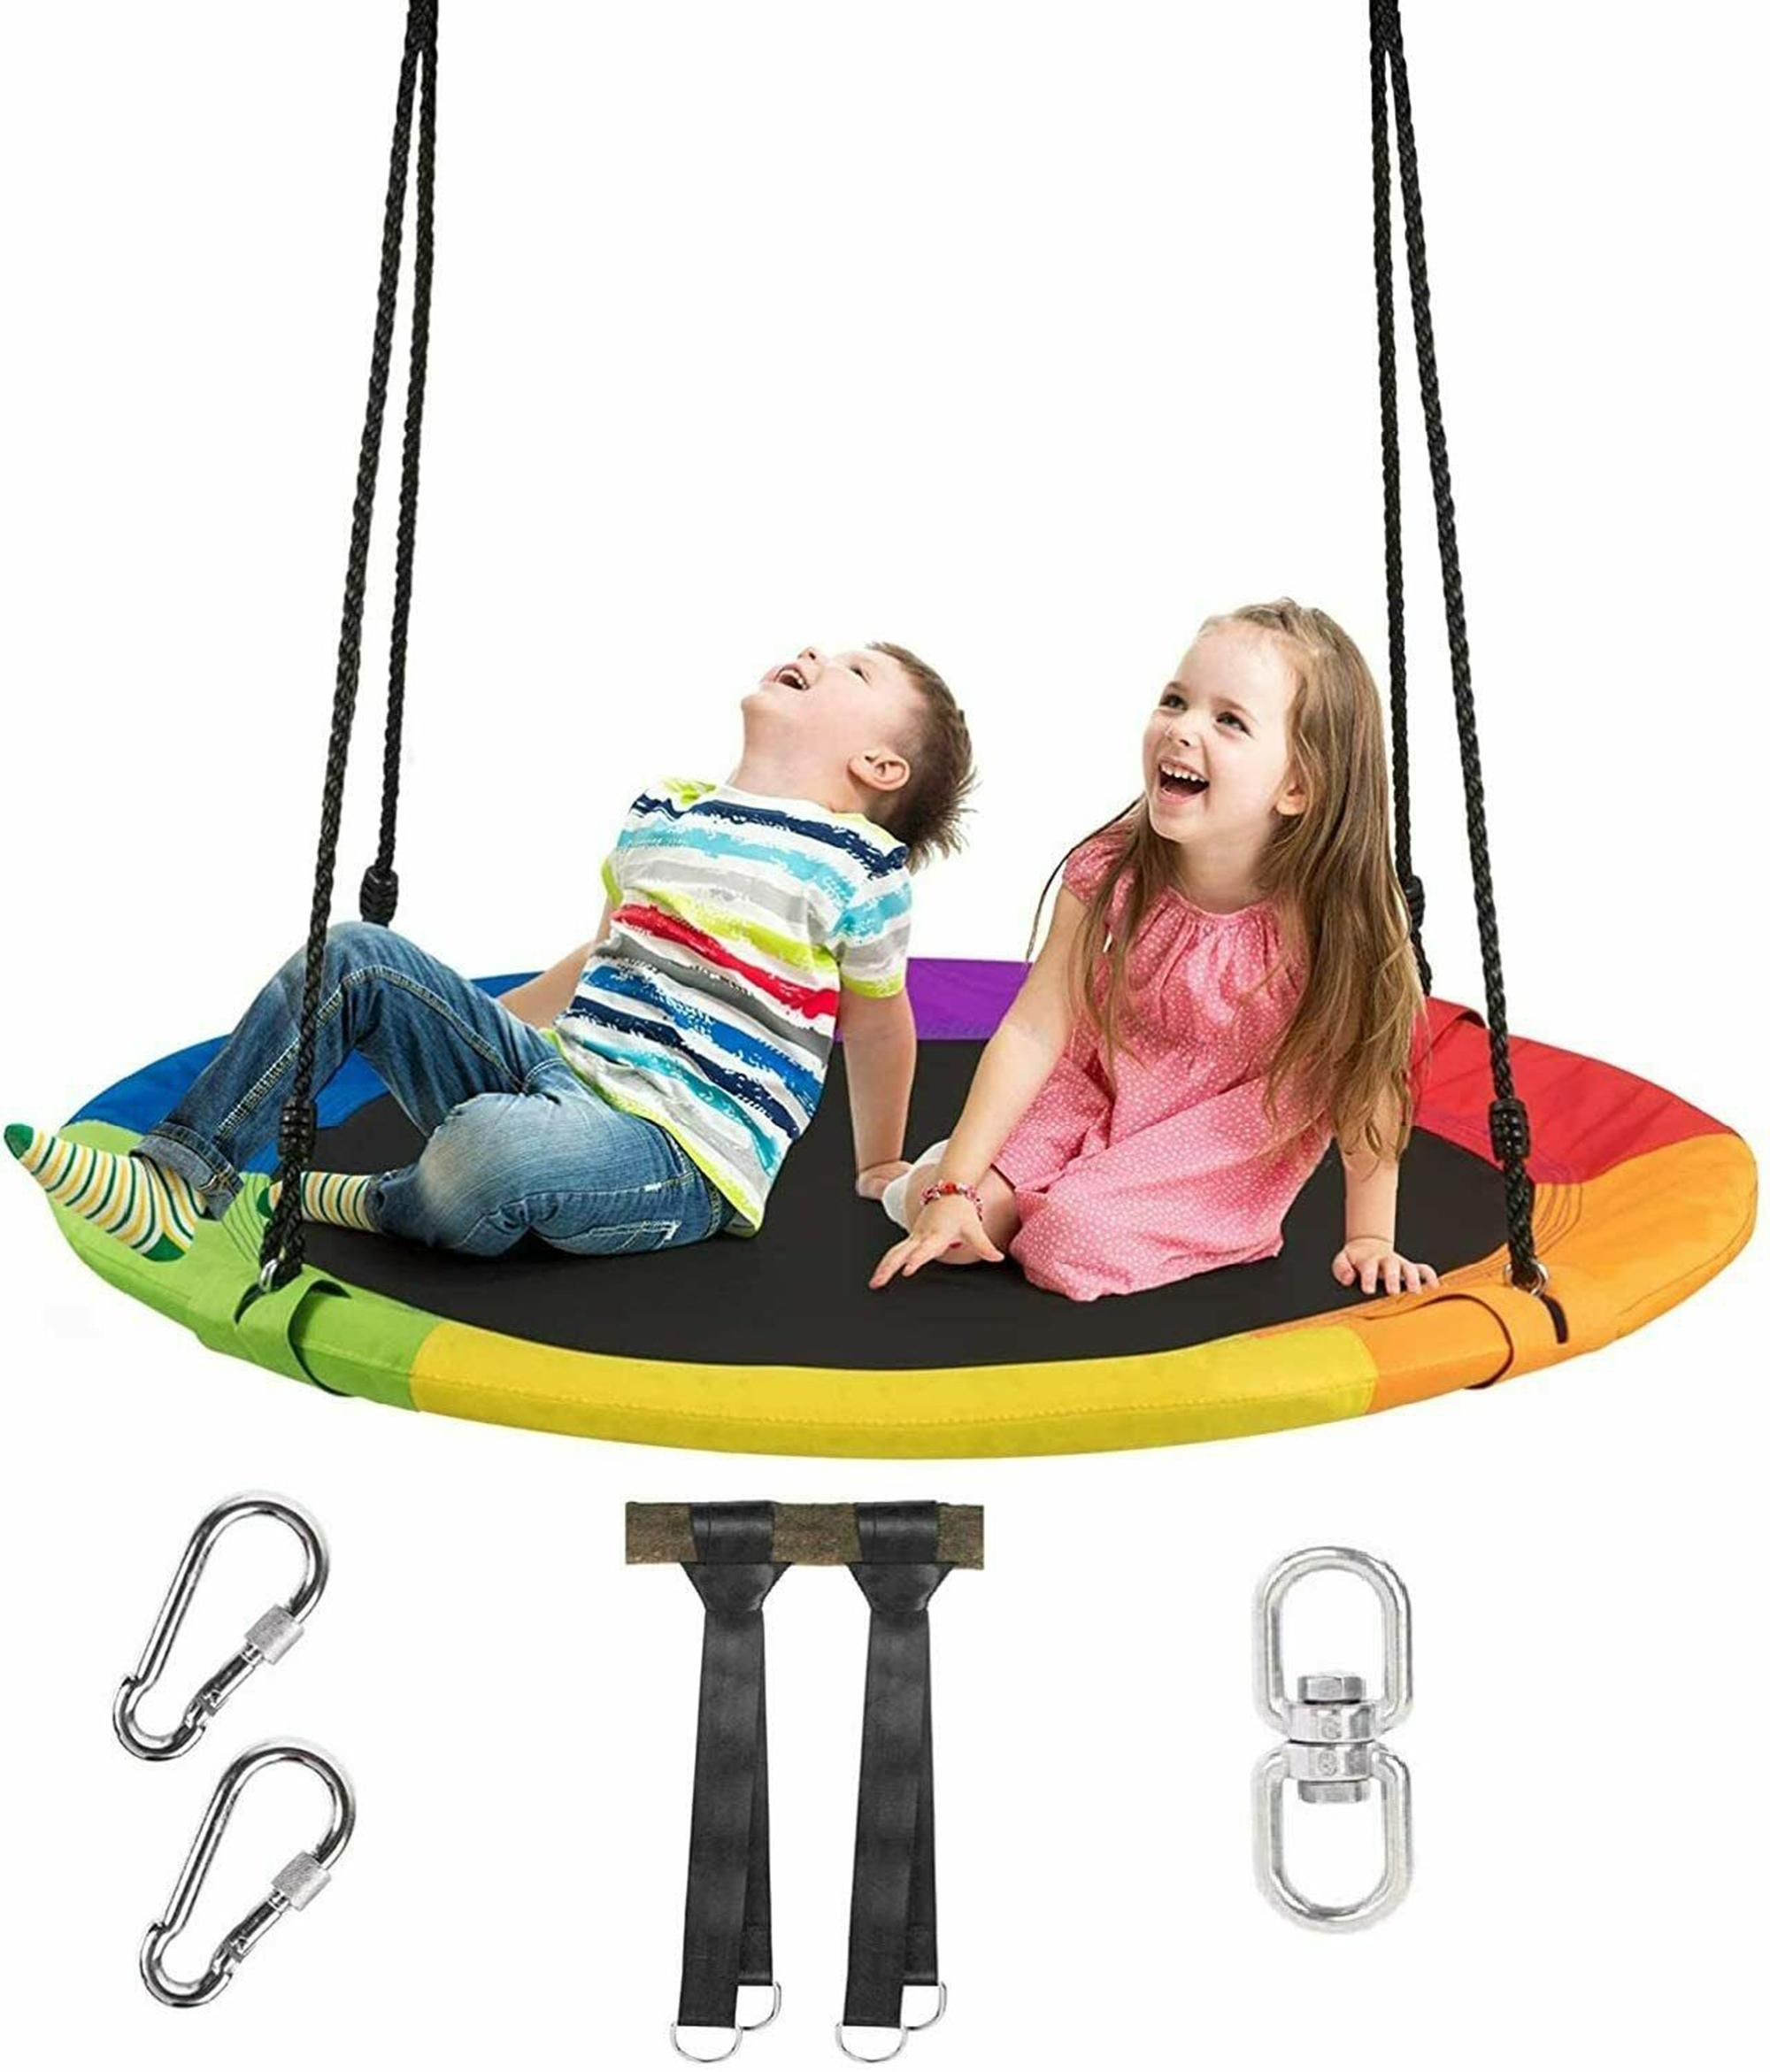 Gymax 40'' 770 lbs Flying Saucer Tree Swing Kids Gift w/ 2 Tree Hanging Straps